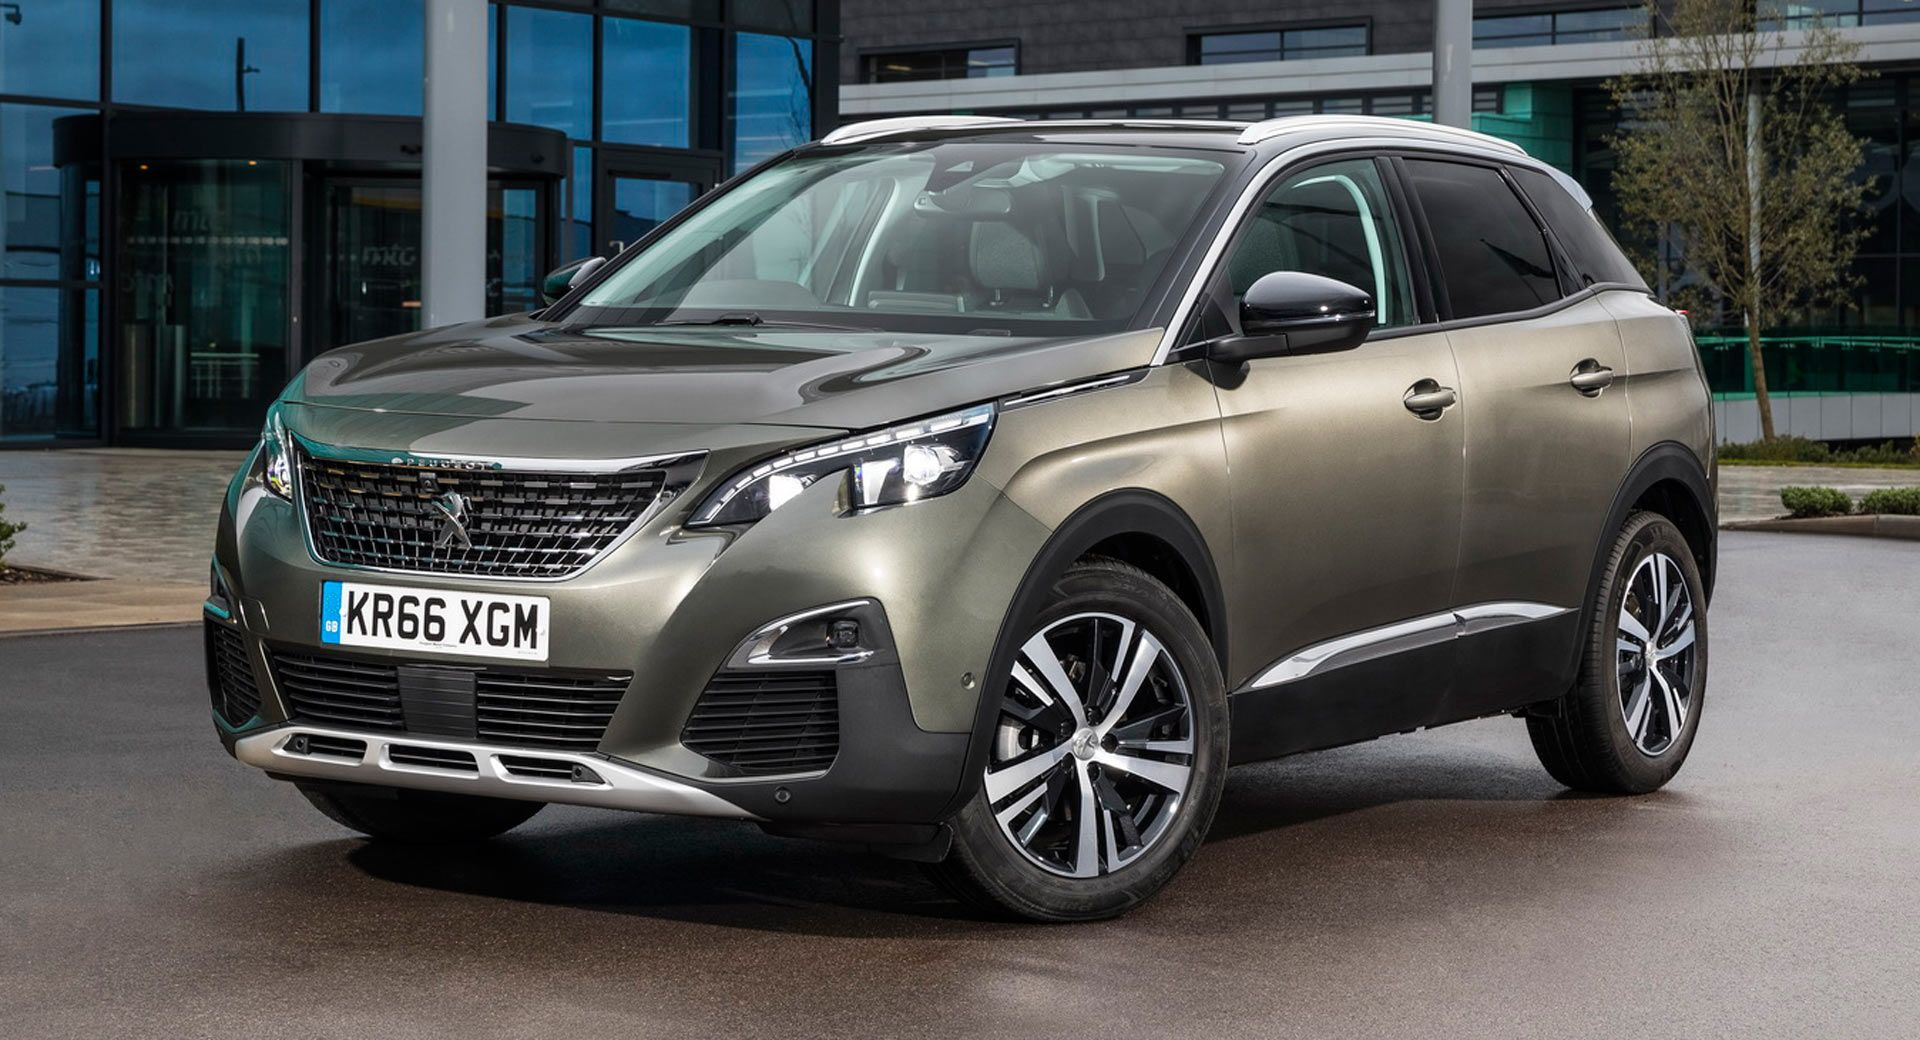 Five Seat Peugeot 4008 Arriving In 2020 Peugeot 3008